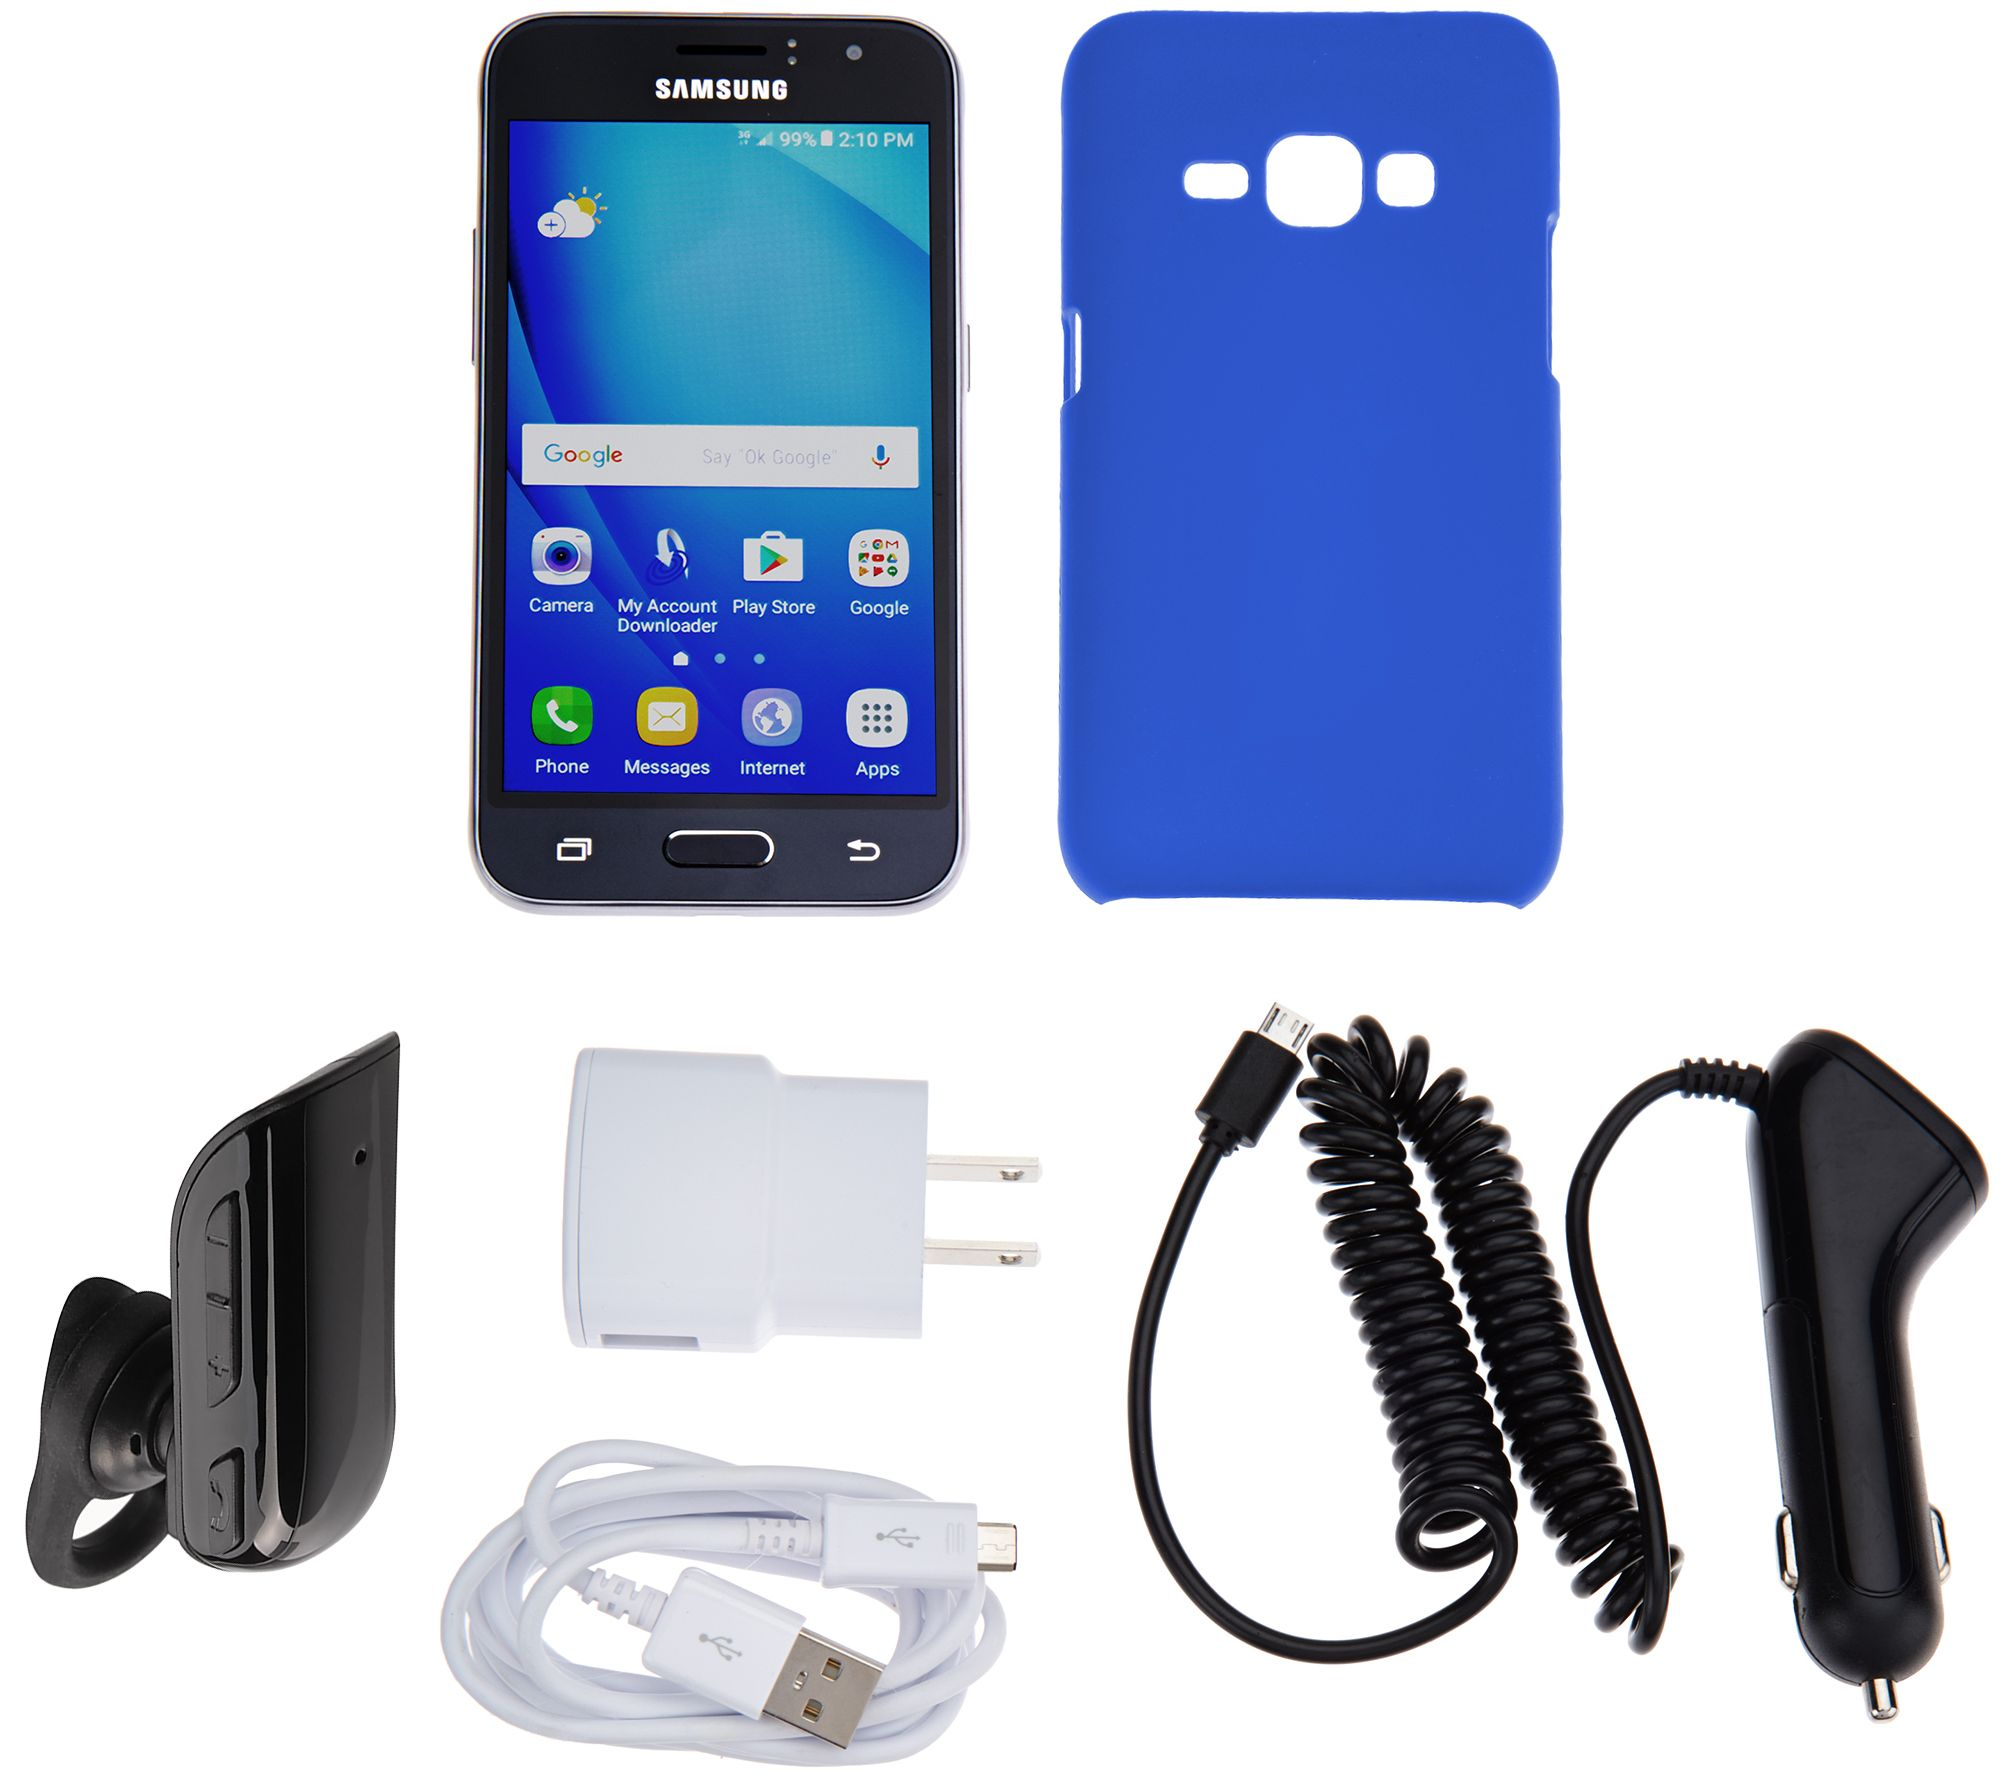 Samsung Galaxy Luna TracFone Smartphone with Case, and 1200 Mins/Texts/Data  — QVC com